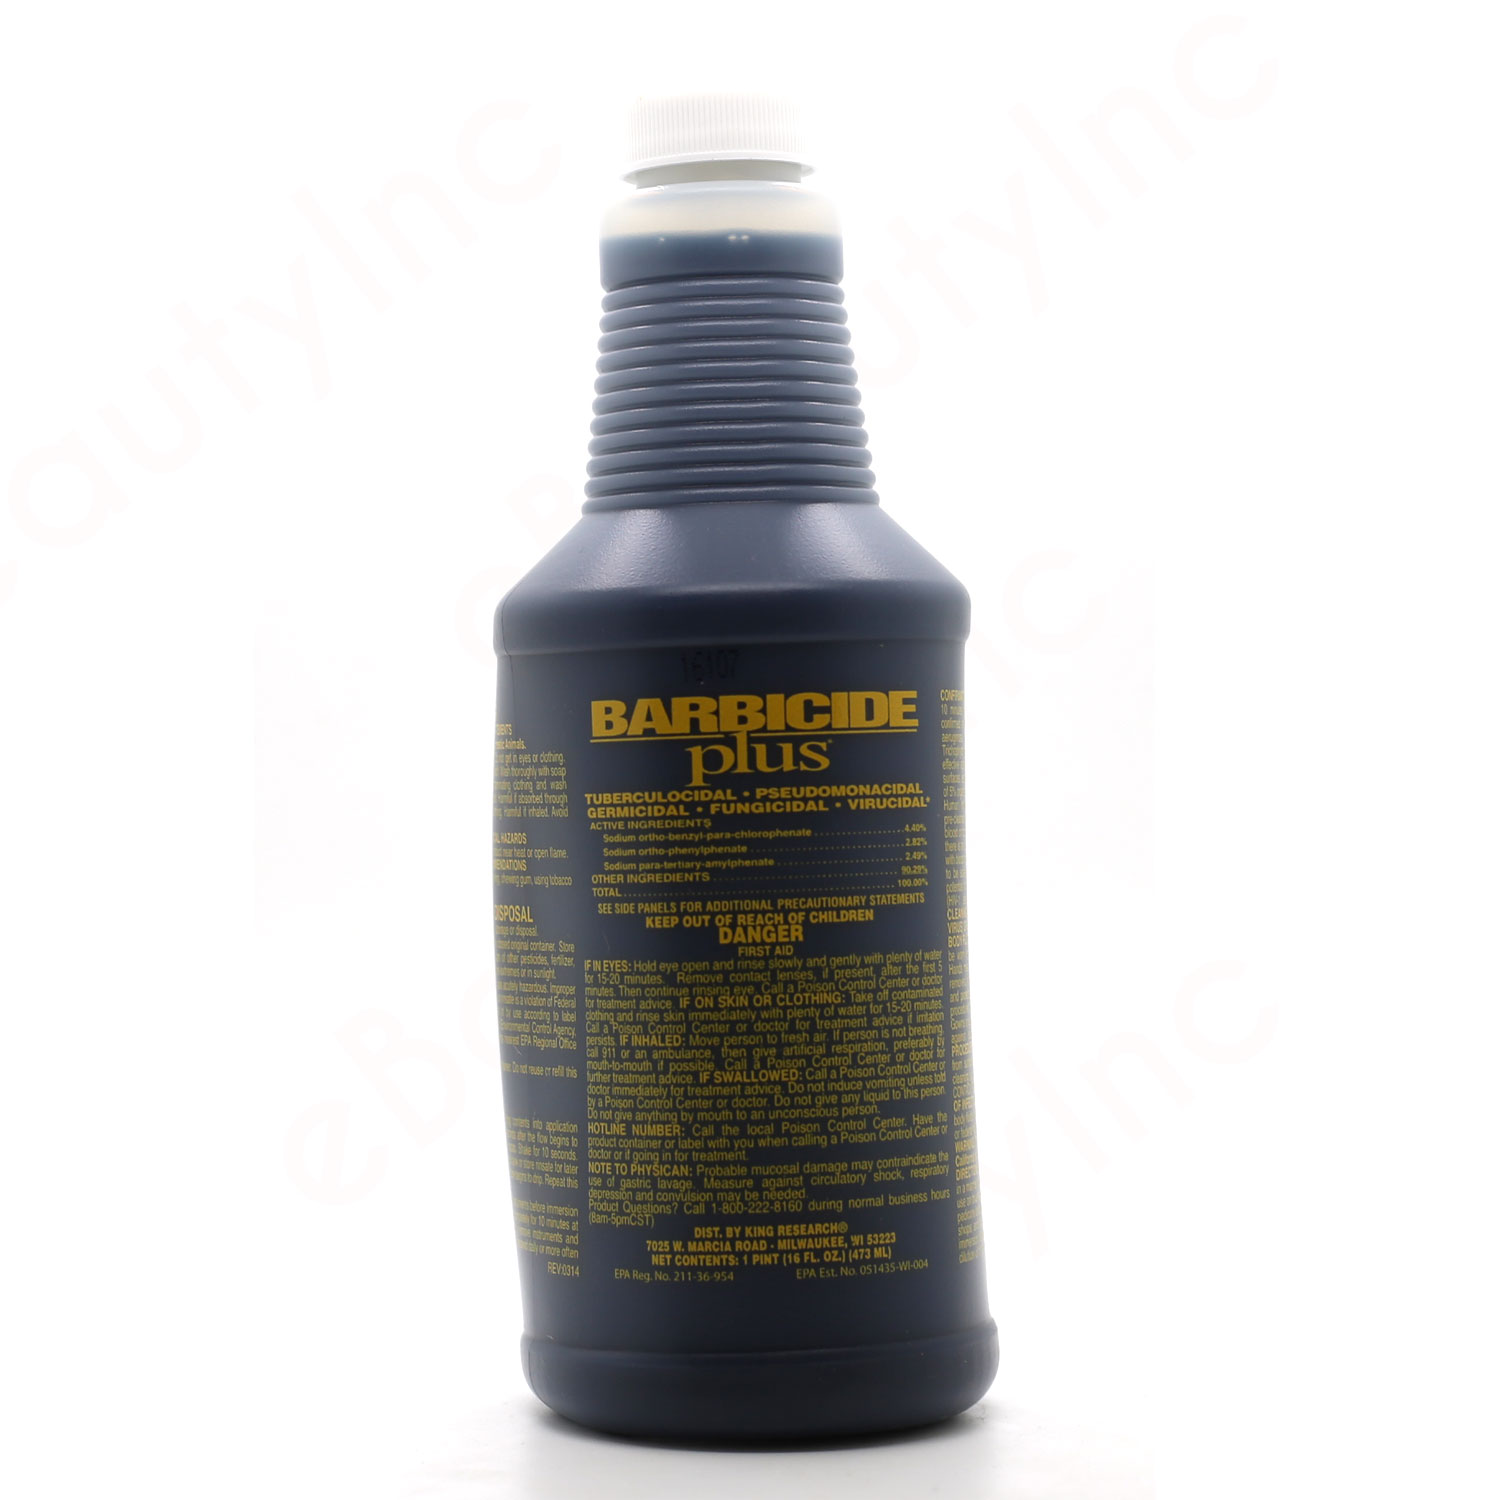 Image of Barbicide Plus Disinfectant Concentrate - 16oz